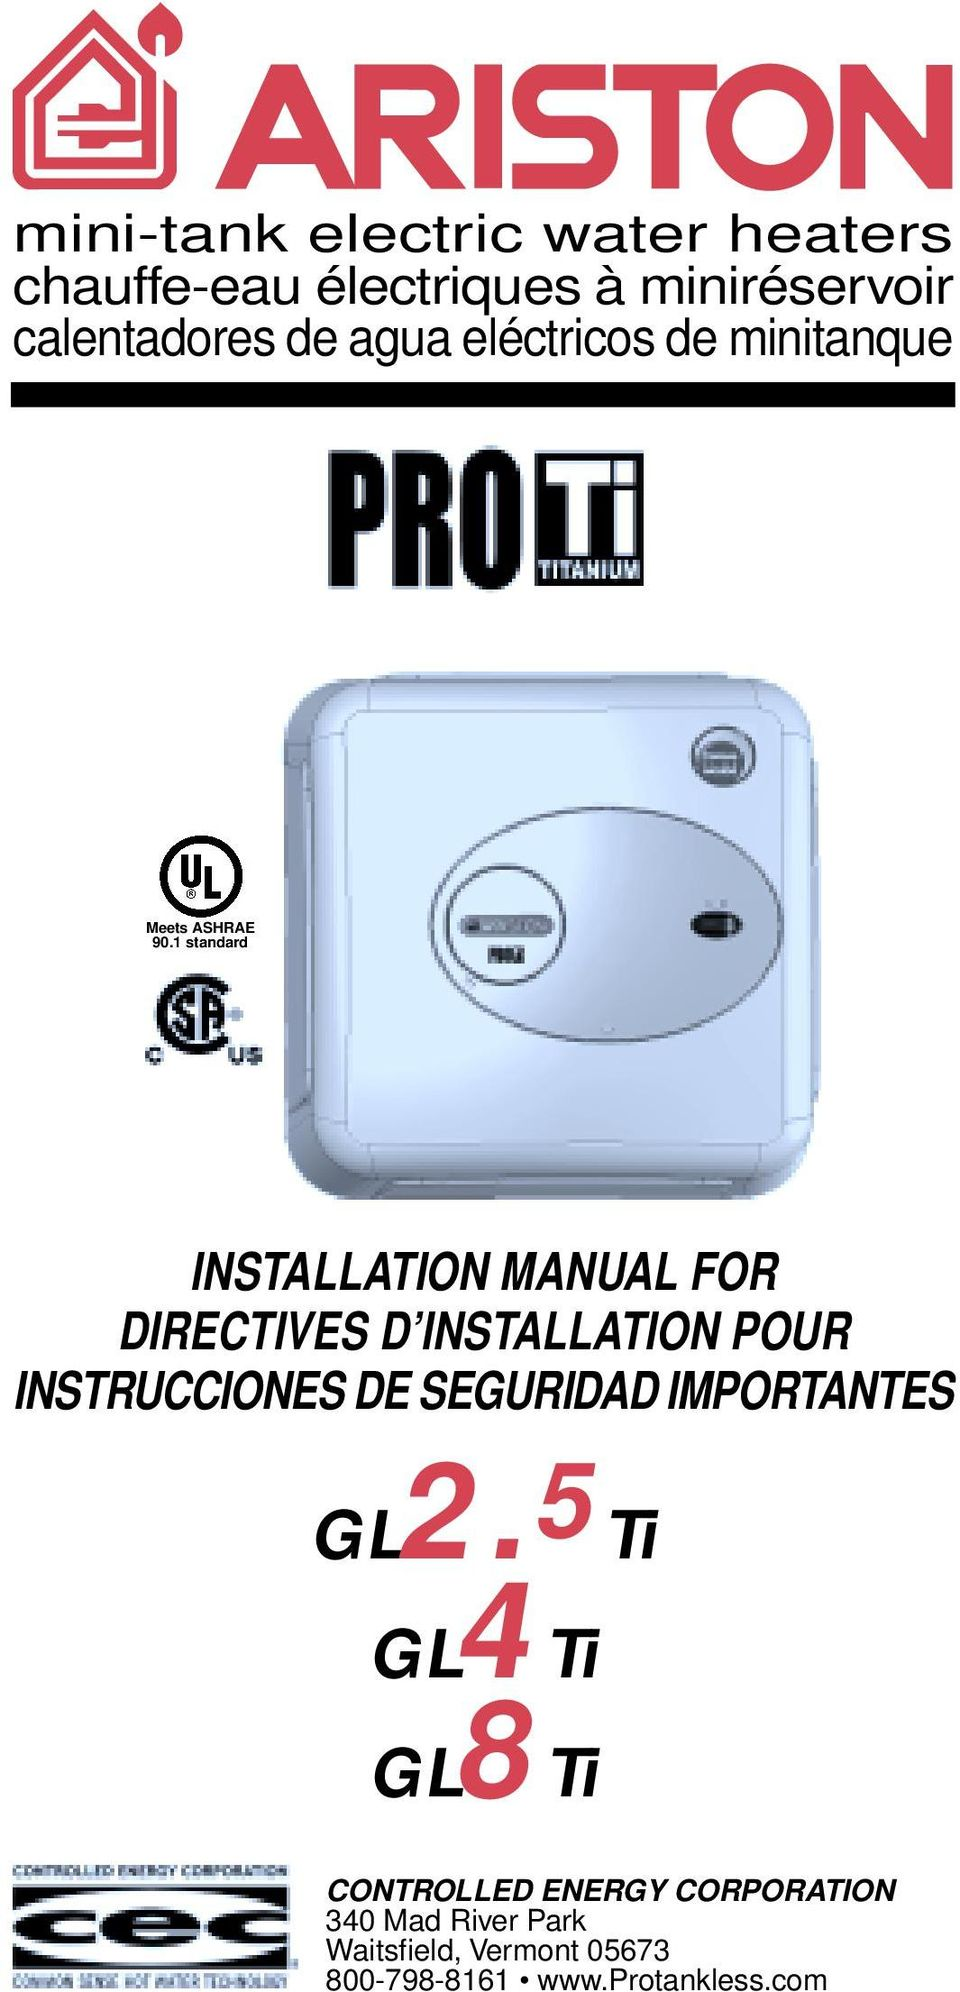 1 standard INSTALLATION MANUAL FOR DIRECTIVES D INSTALLATION POUR INSTRUCCIONES DE